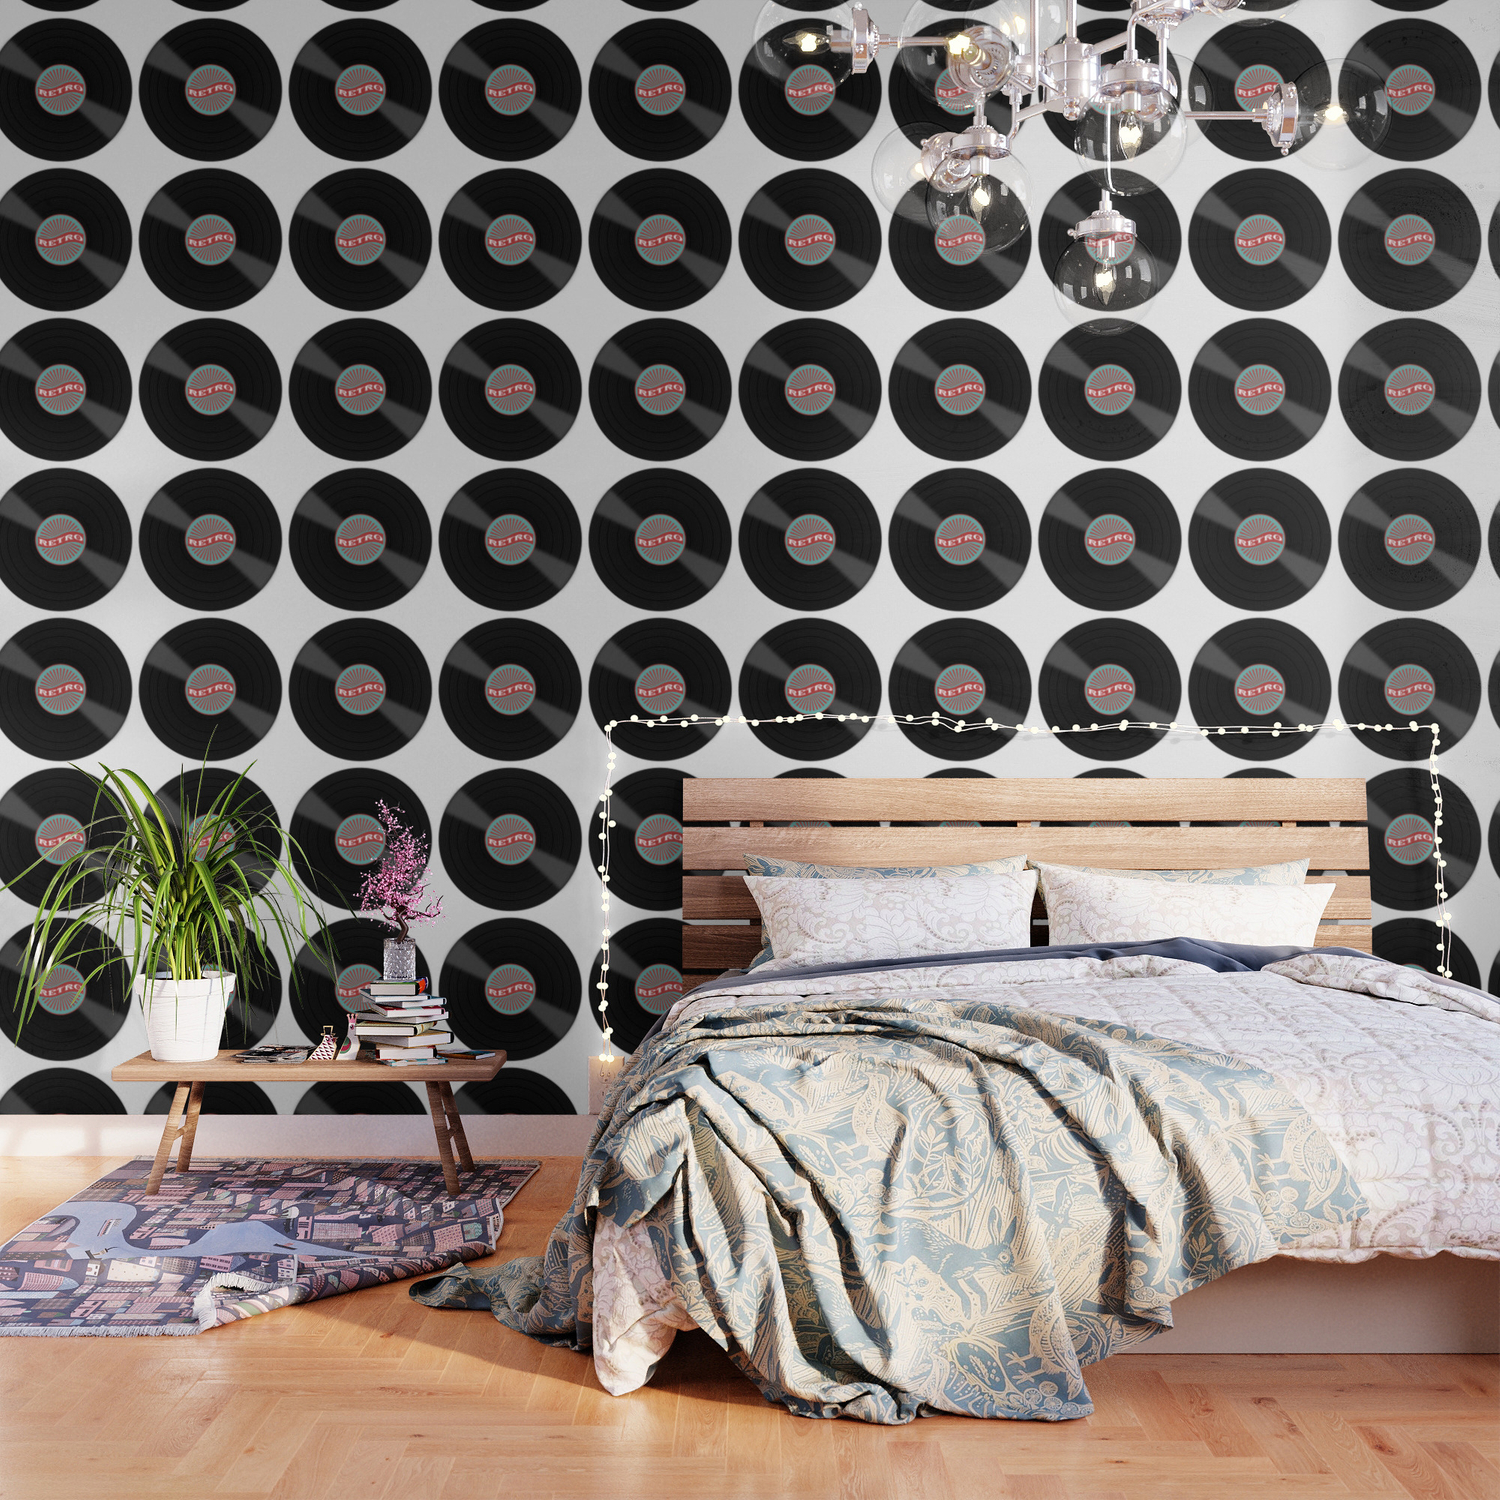 Retro Vinyl Record Wallpaper By Inspiredimages Society6